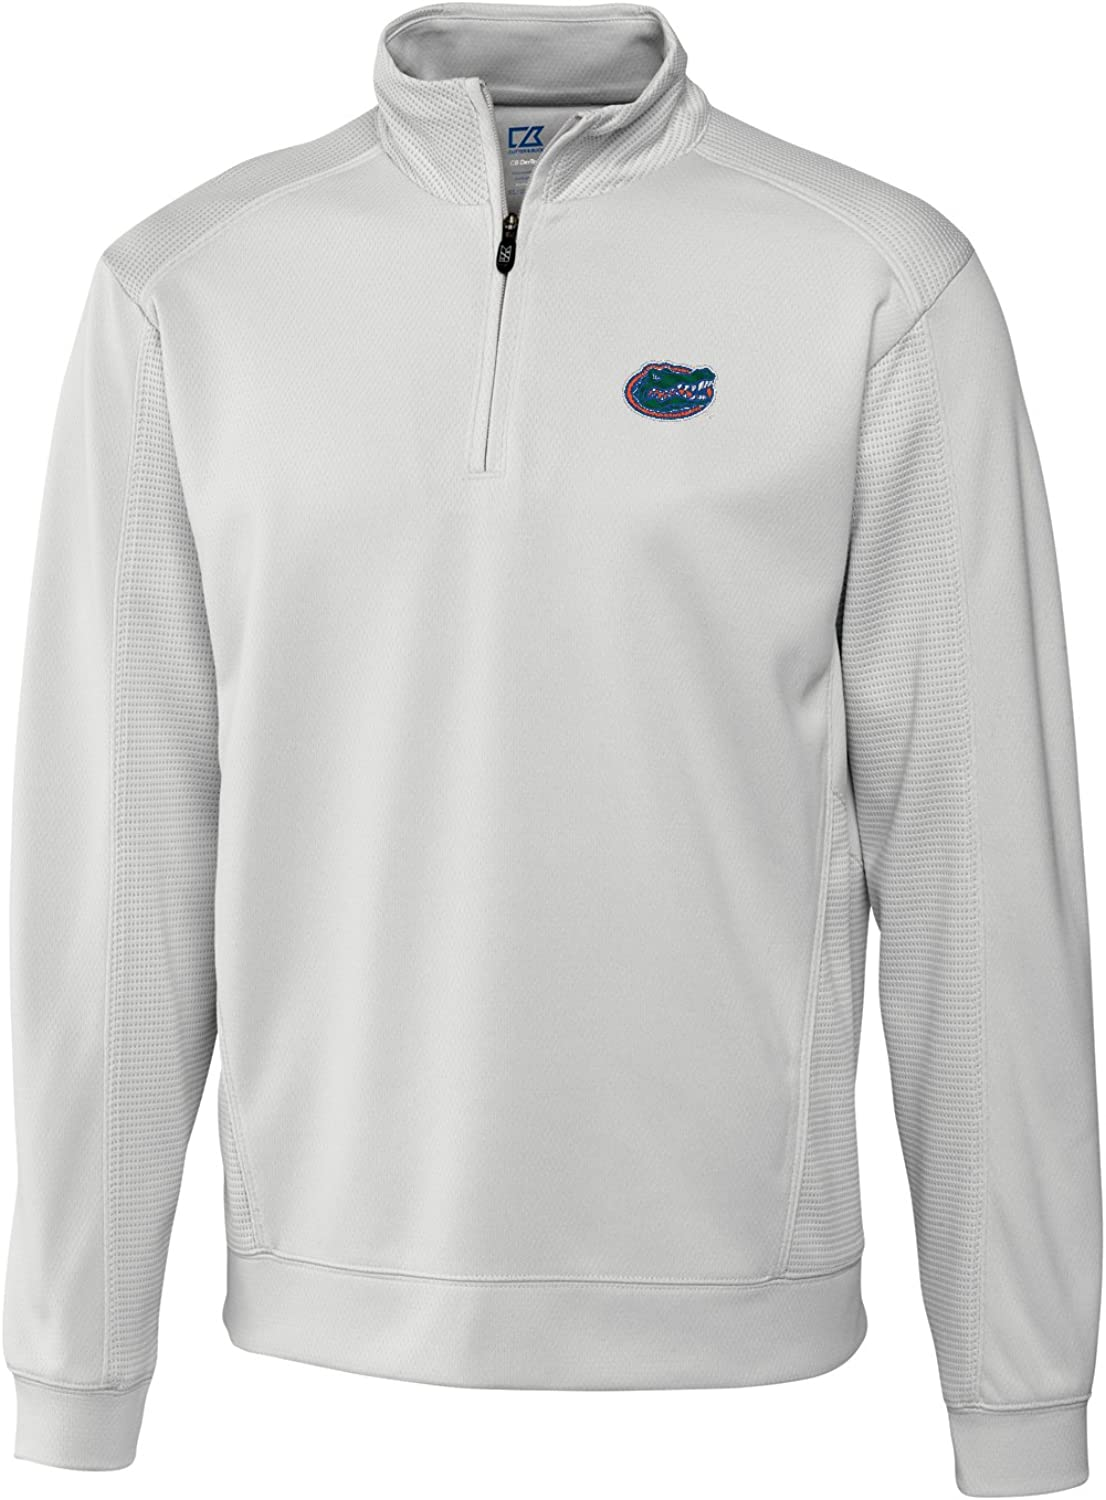 NCAA Men's Edge Half Zip Shirt